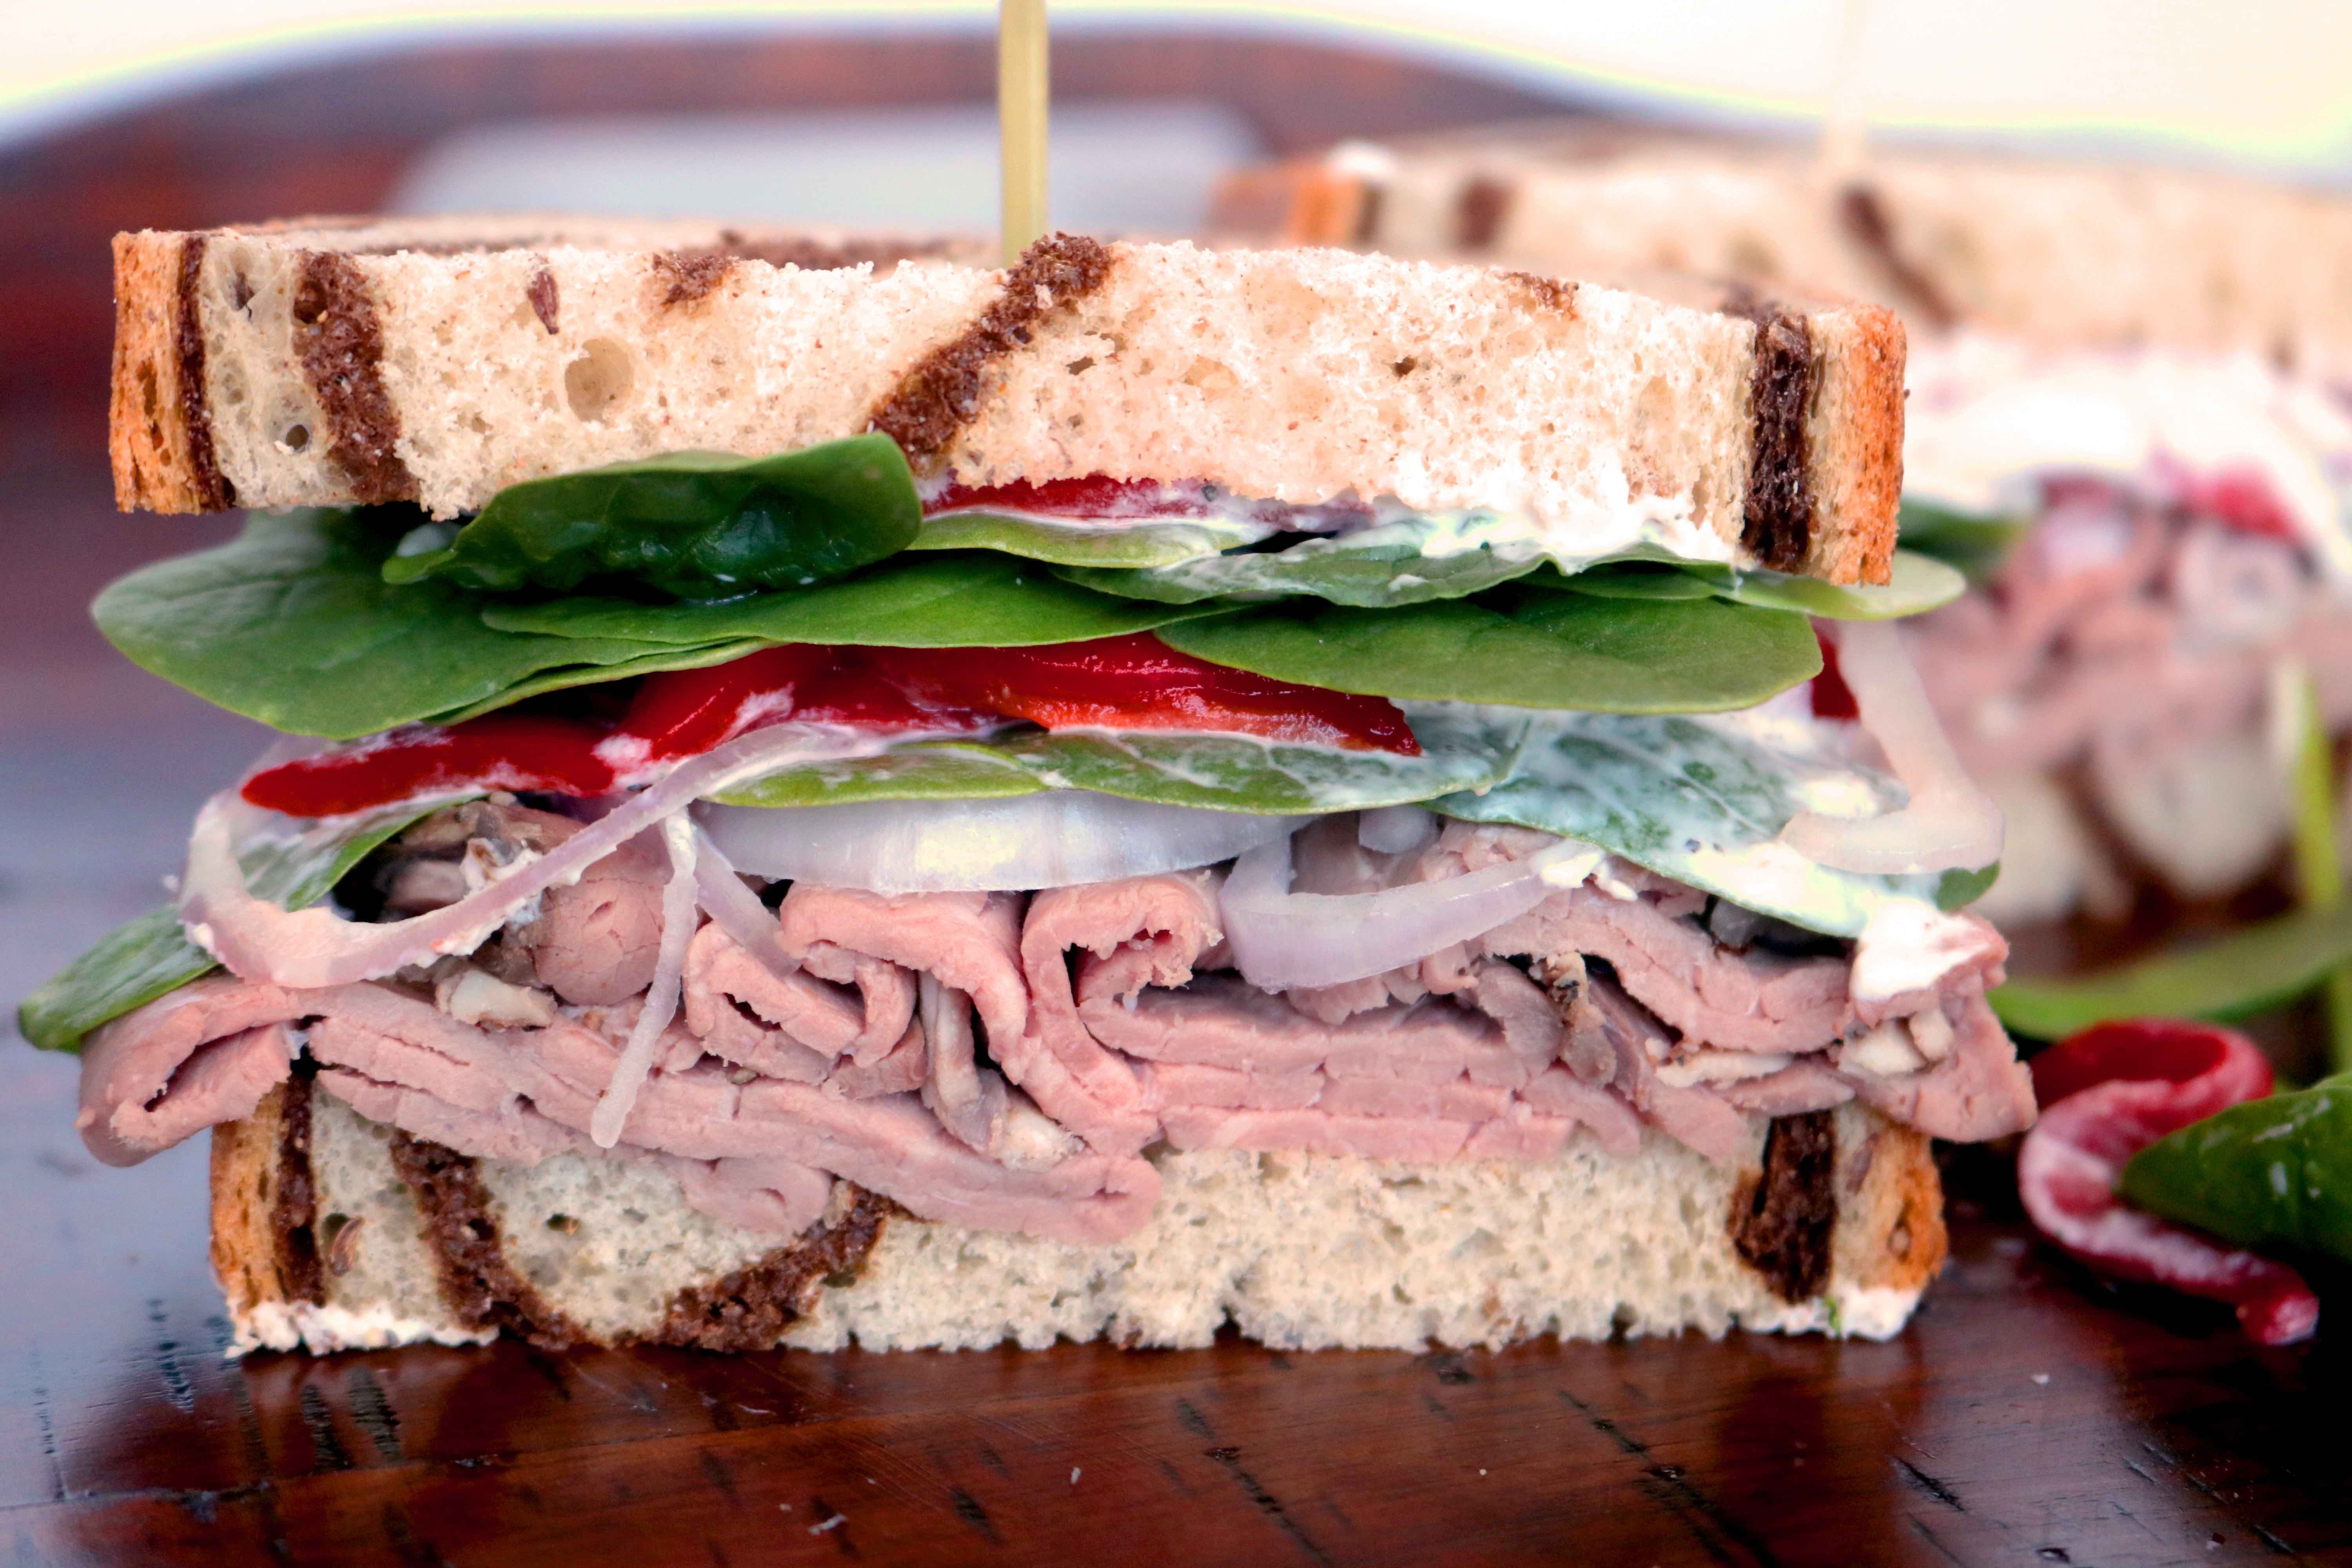 Roast Beef Sandwich Recipe With Quick Roast Beef Sandwich Spread,What Paint Finish For Bathroom Vanity